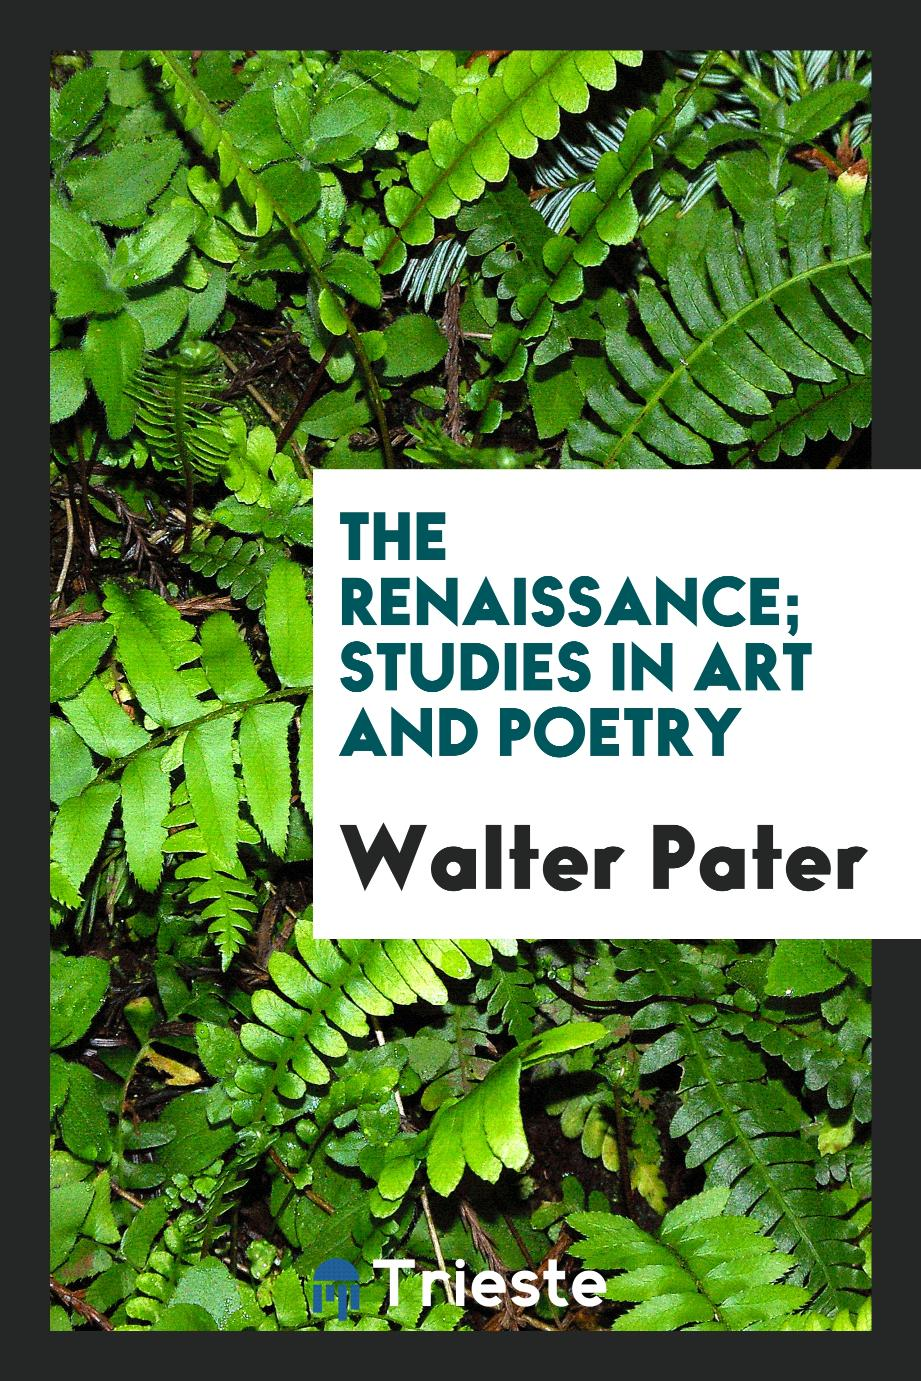 The renaissance; studies in art and poetry